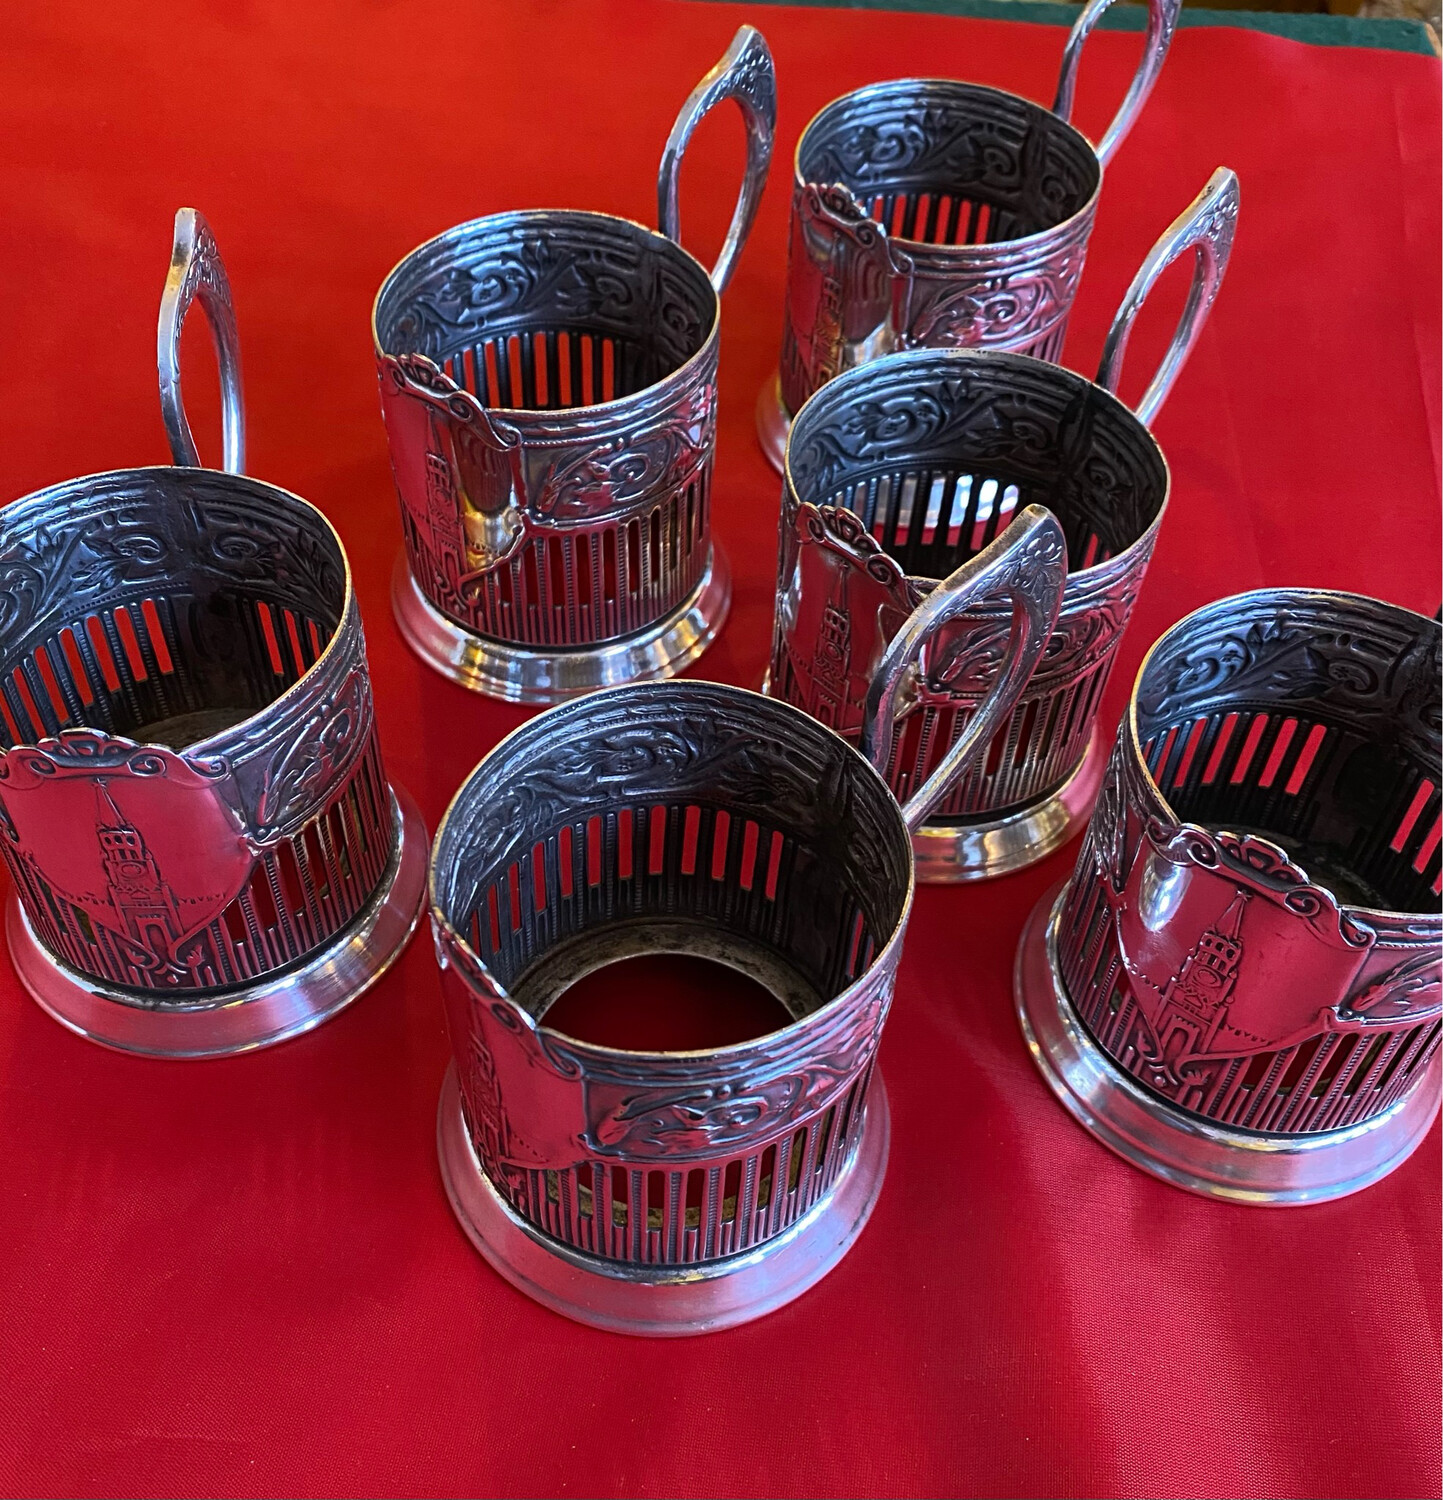 Set Of 6 White Metal Russian Tea Holders - Missing The Glass Liners